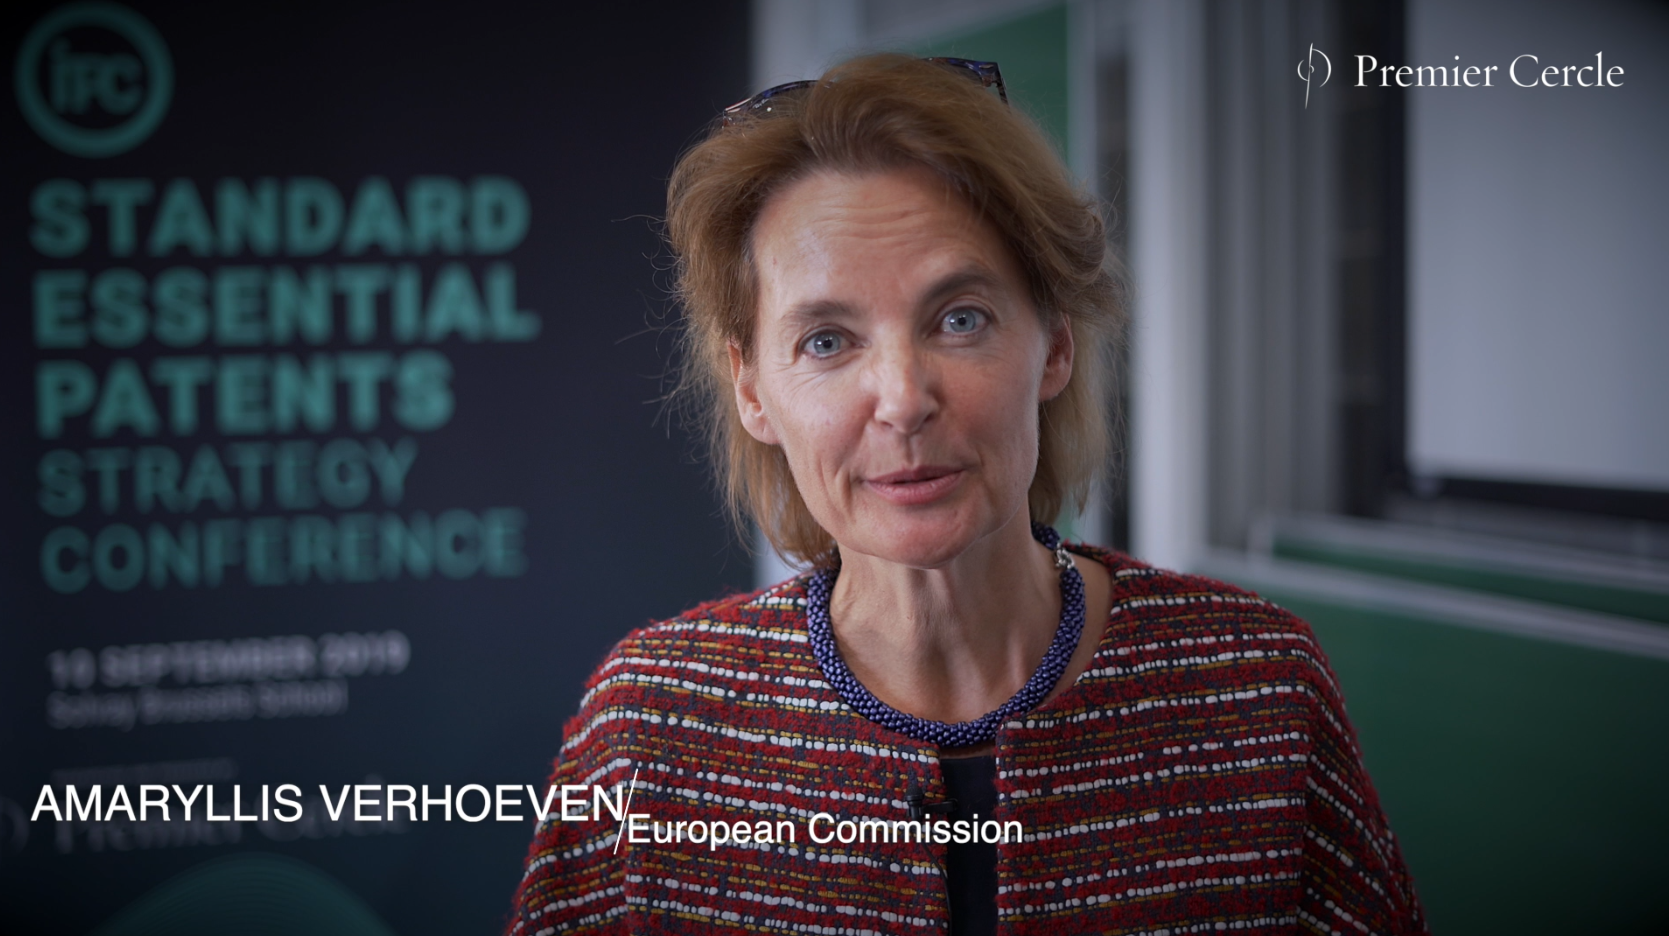 Amaryllis Verhoeven, from the European Commission interviewed by Premier Cercle